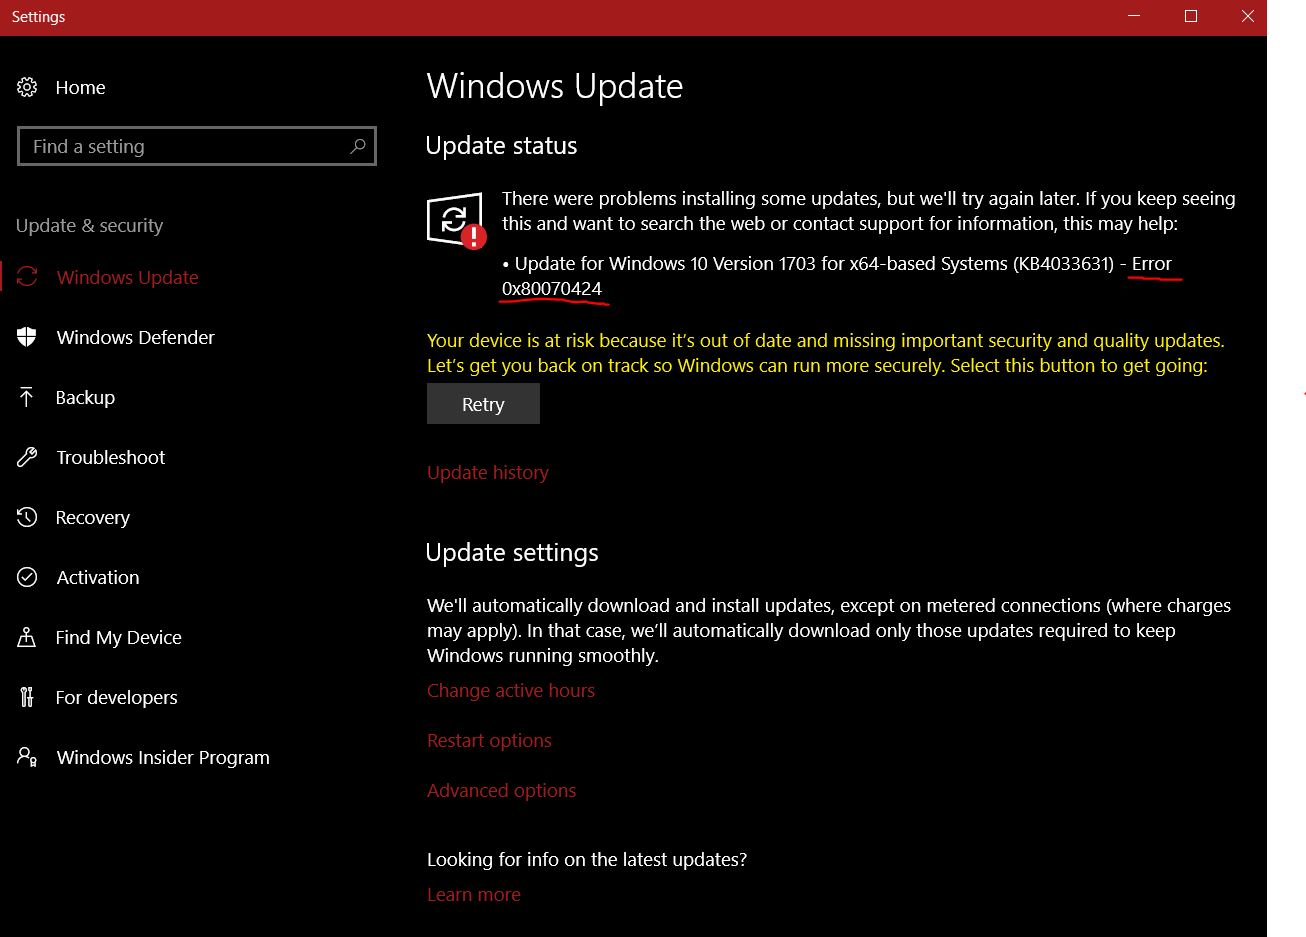 Update for Windows 10 Version 1703 for x64-based Systems